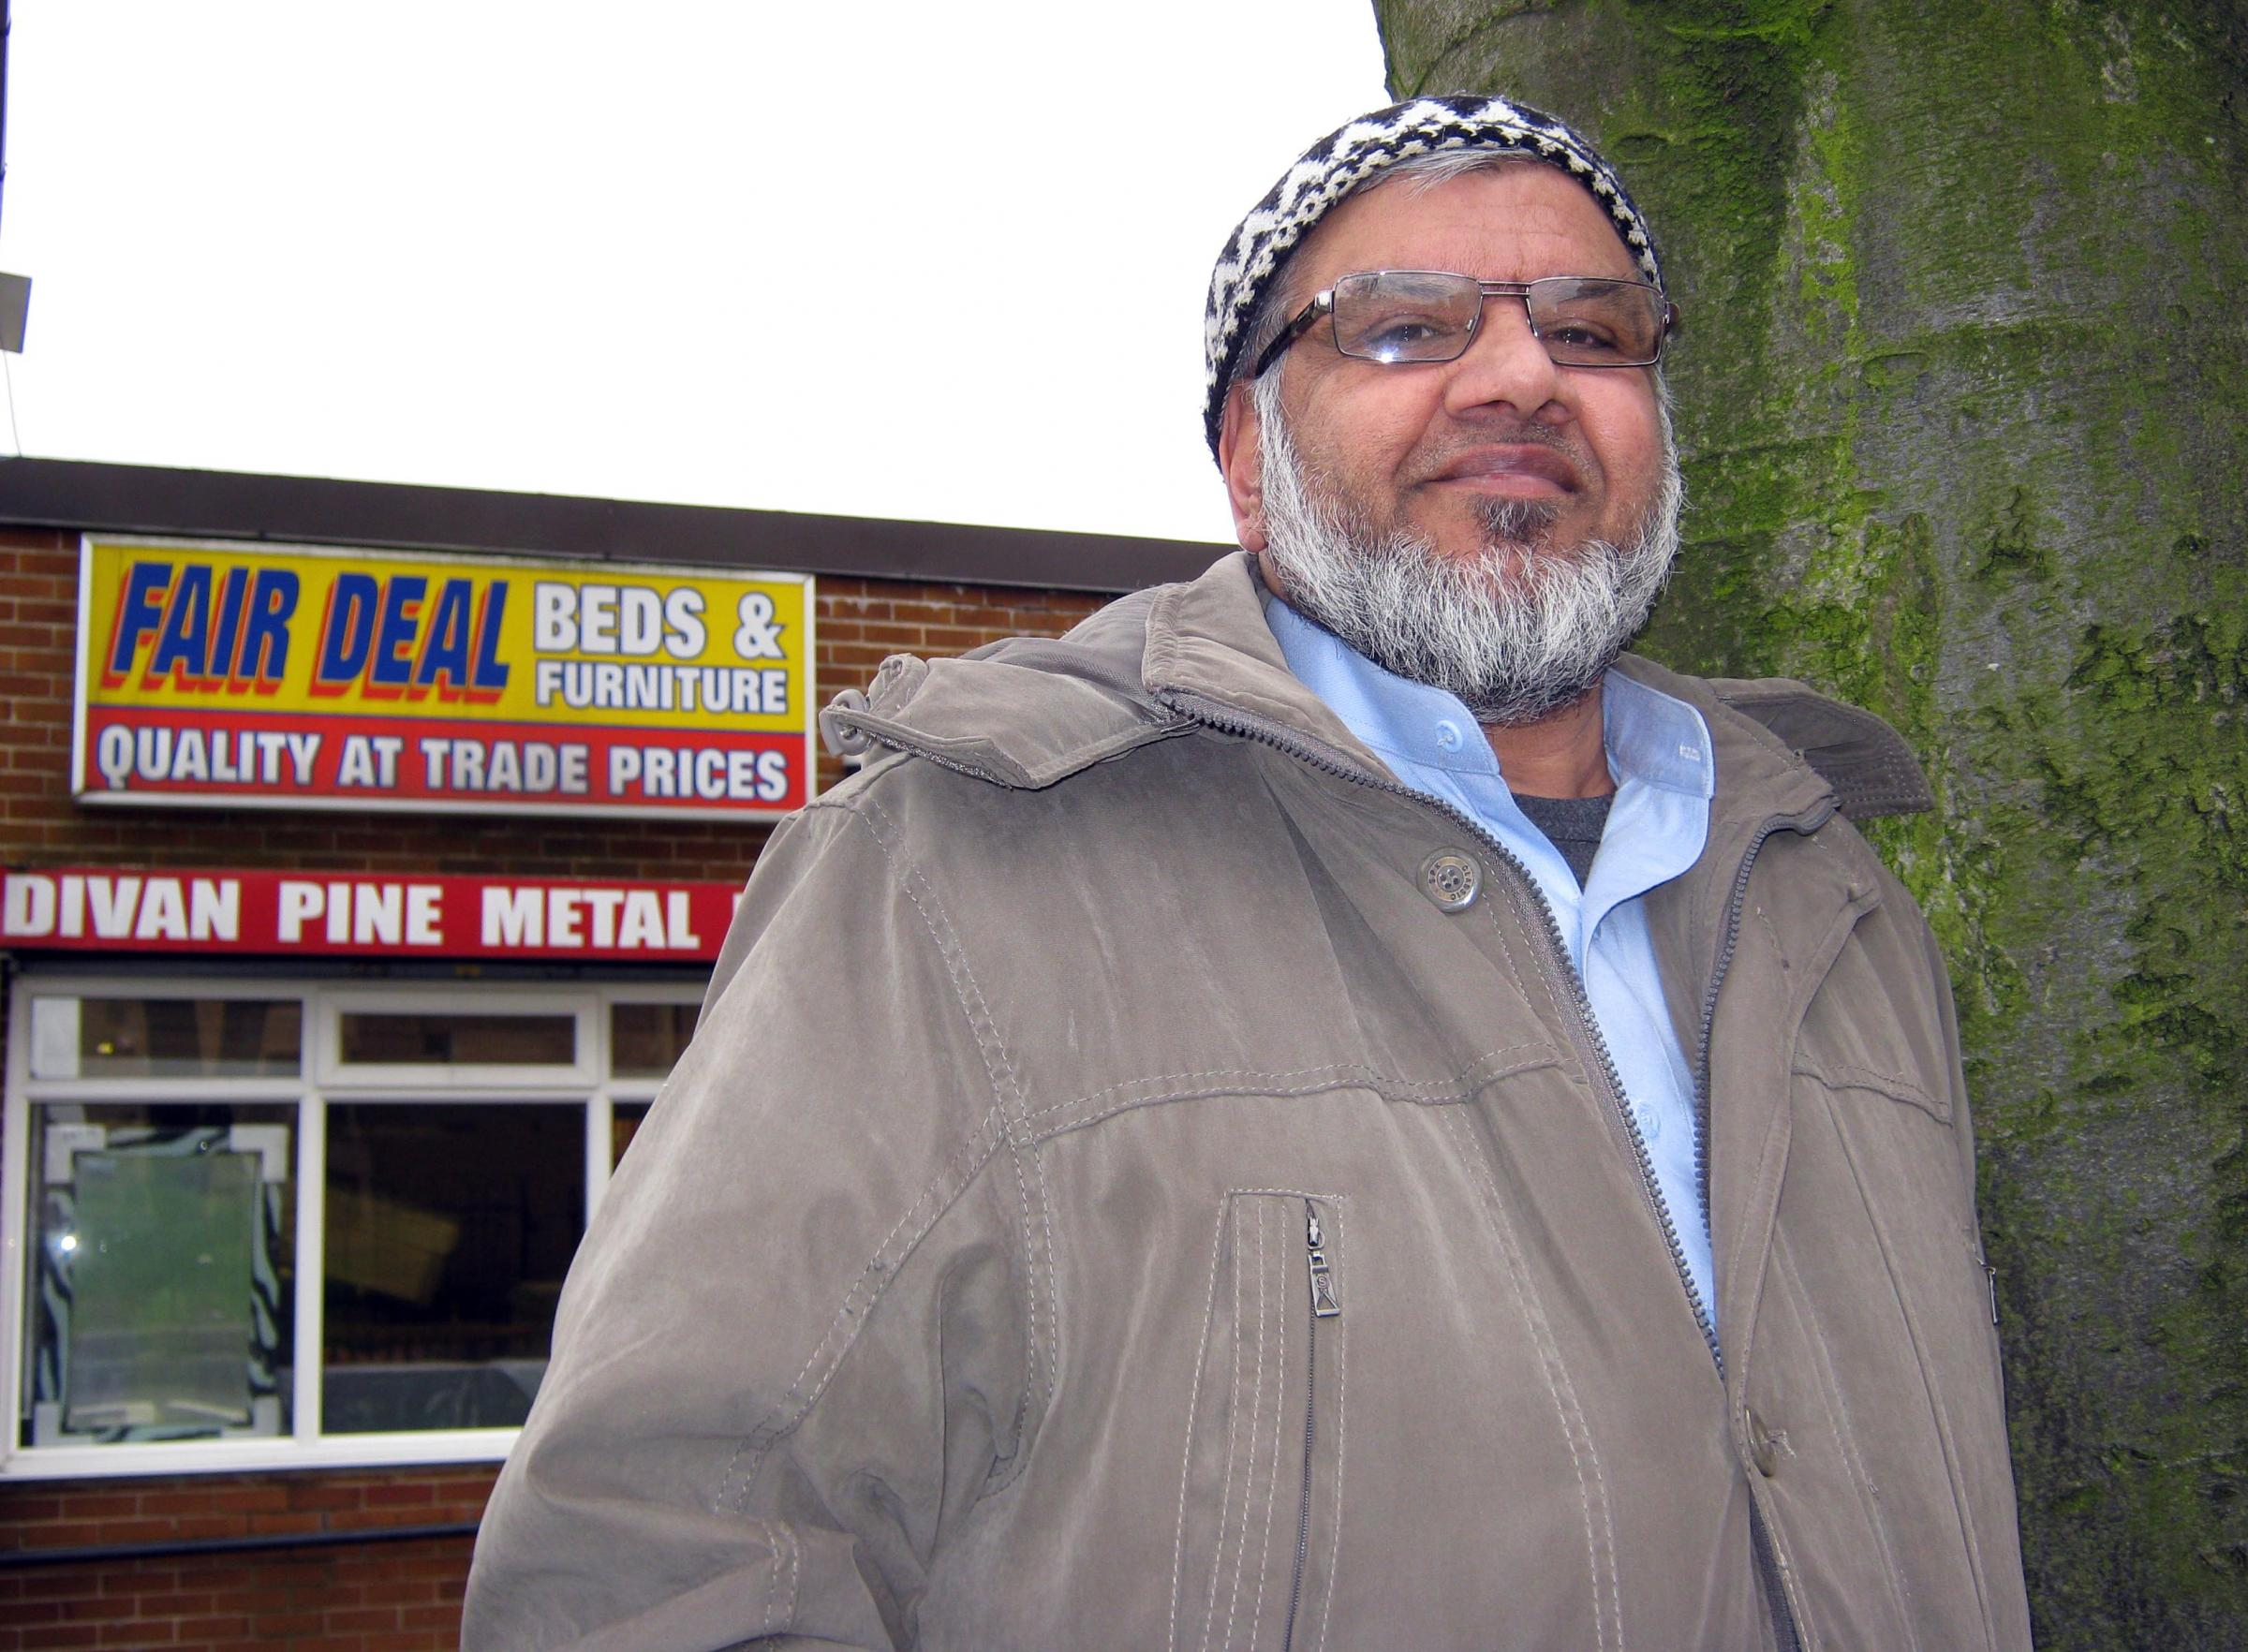 Aslam Khan, of Keighley, who has had one of his naats – an Islamic poem – read out on TV